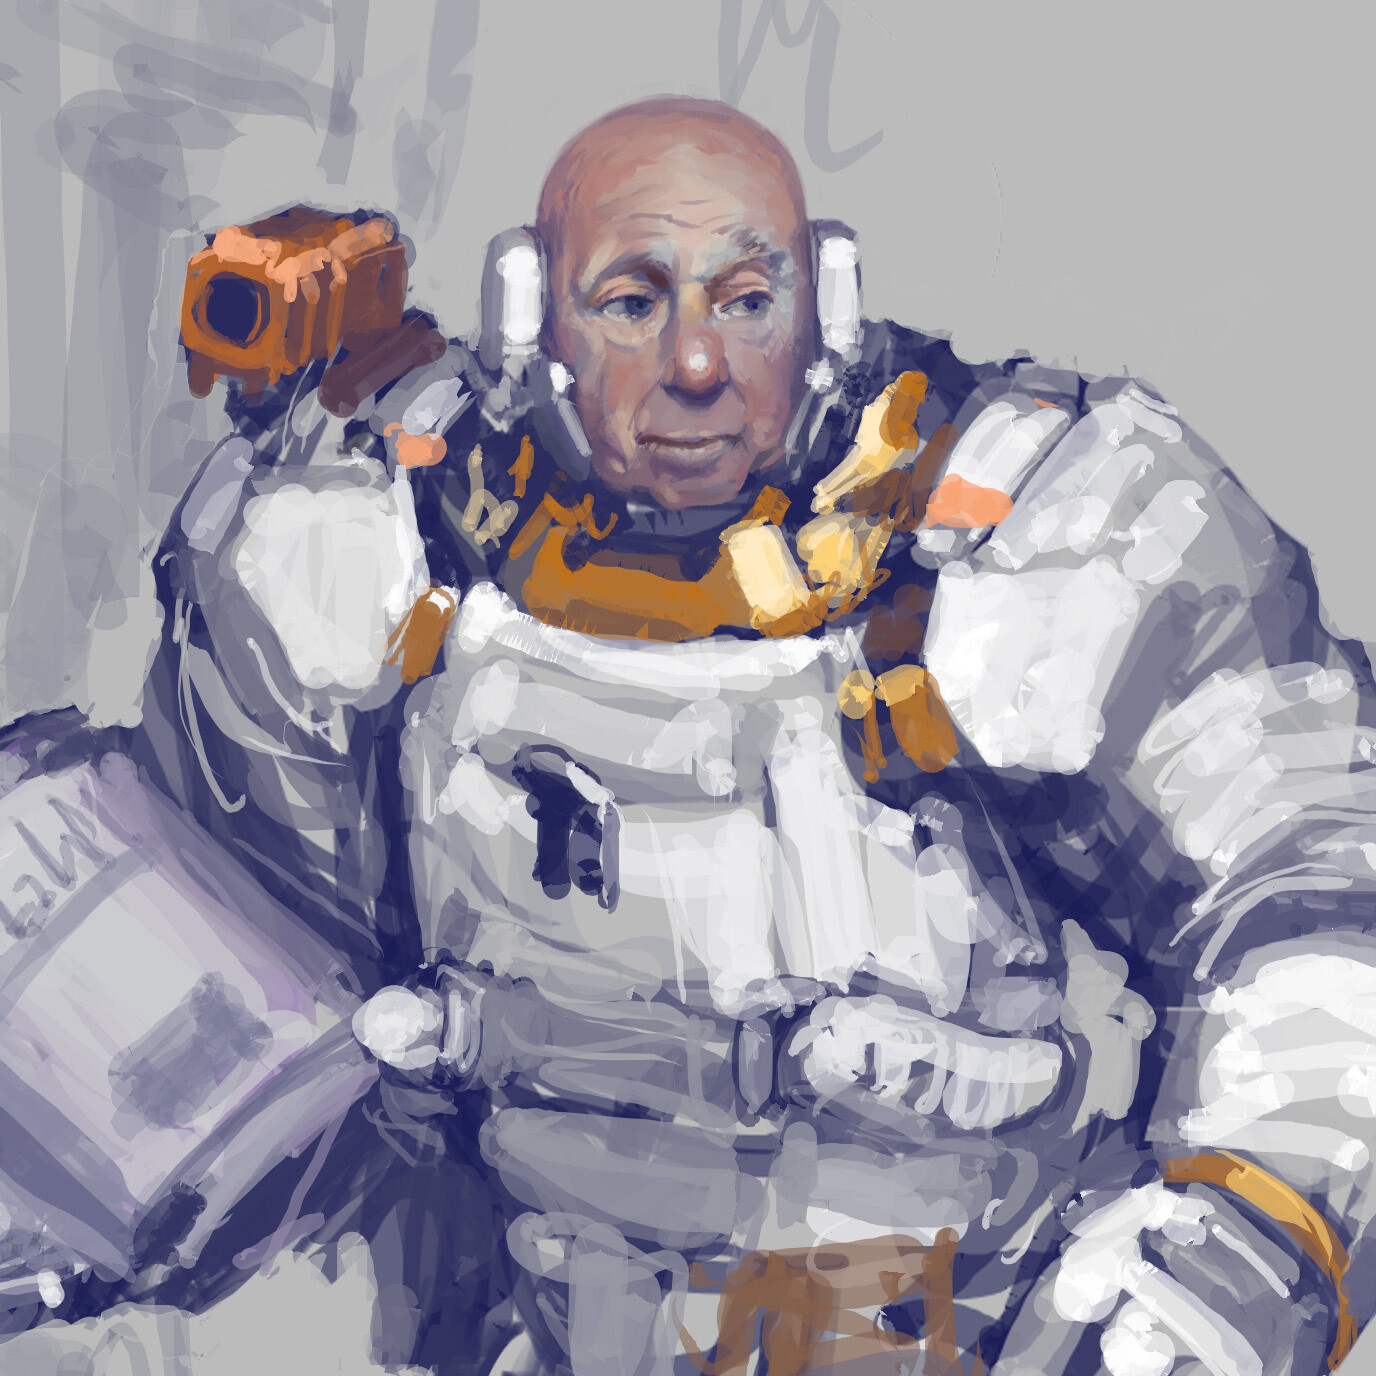 Old Astronaut